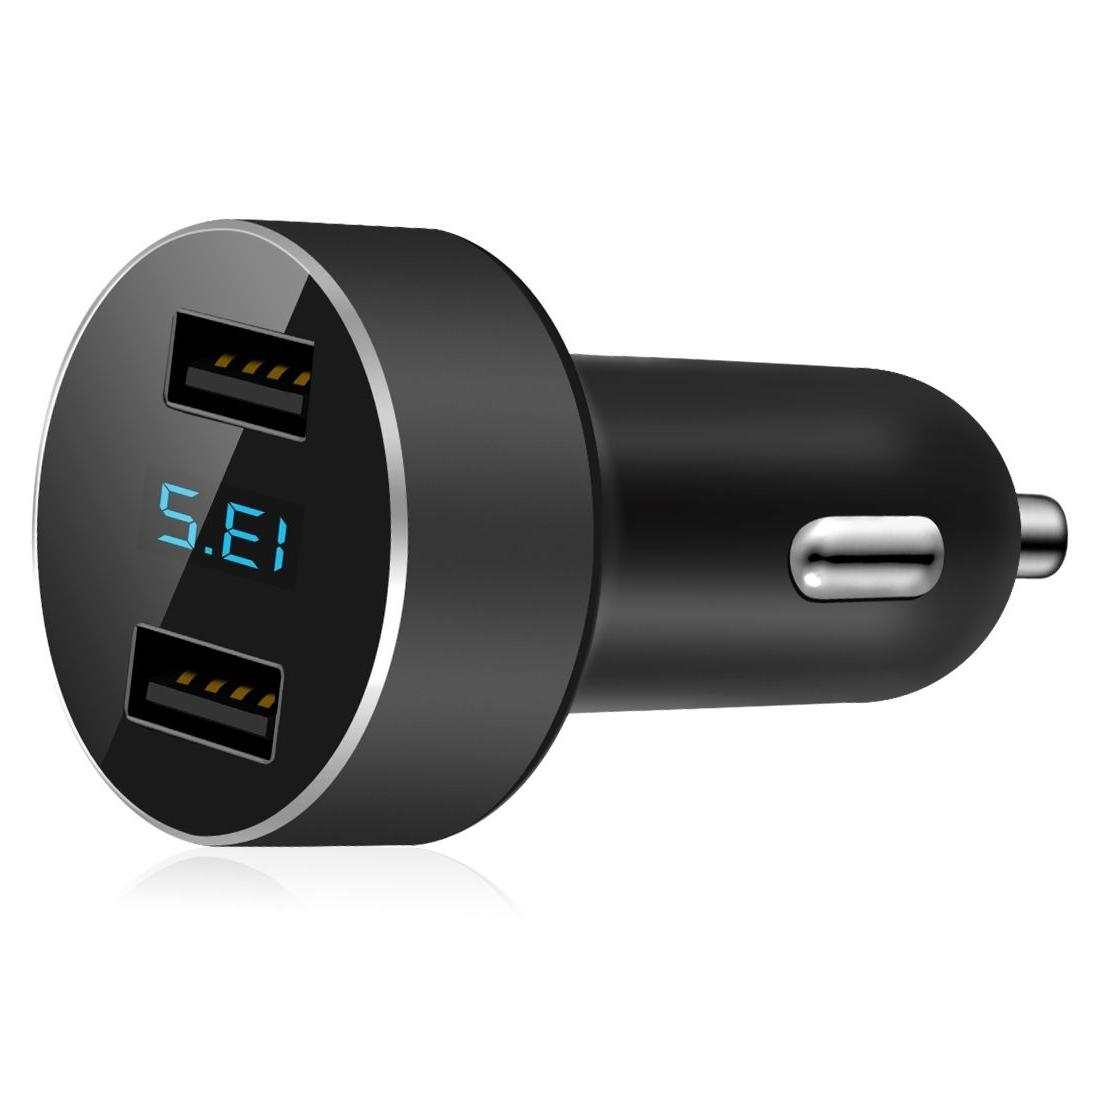 Dual USB Car Charger Adapter LED Display Fast Charging for i